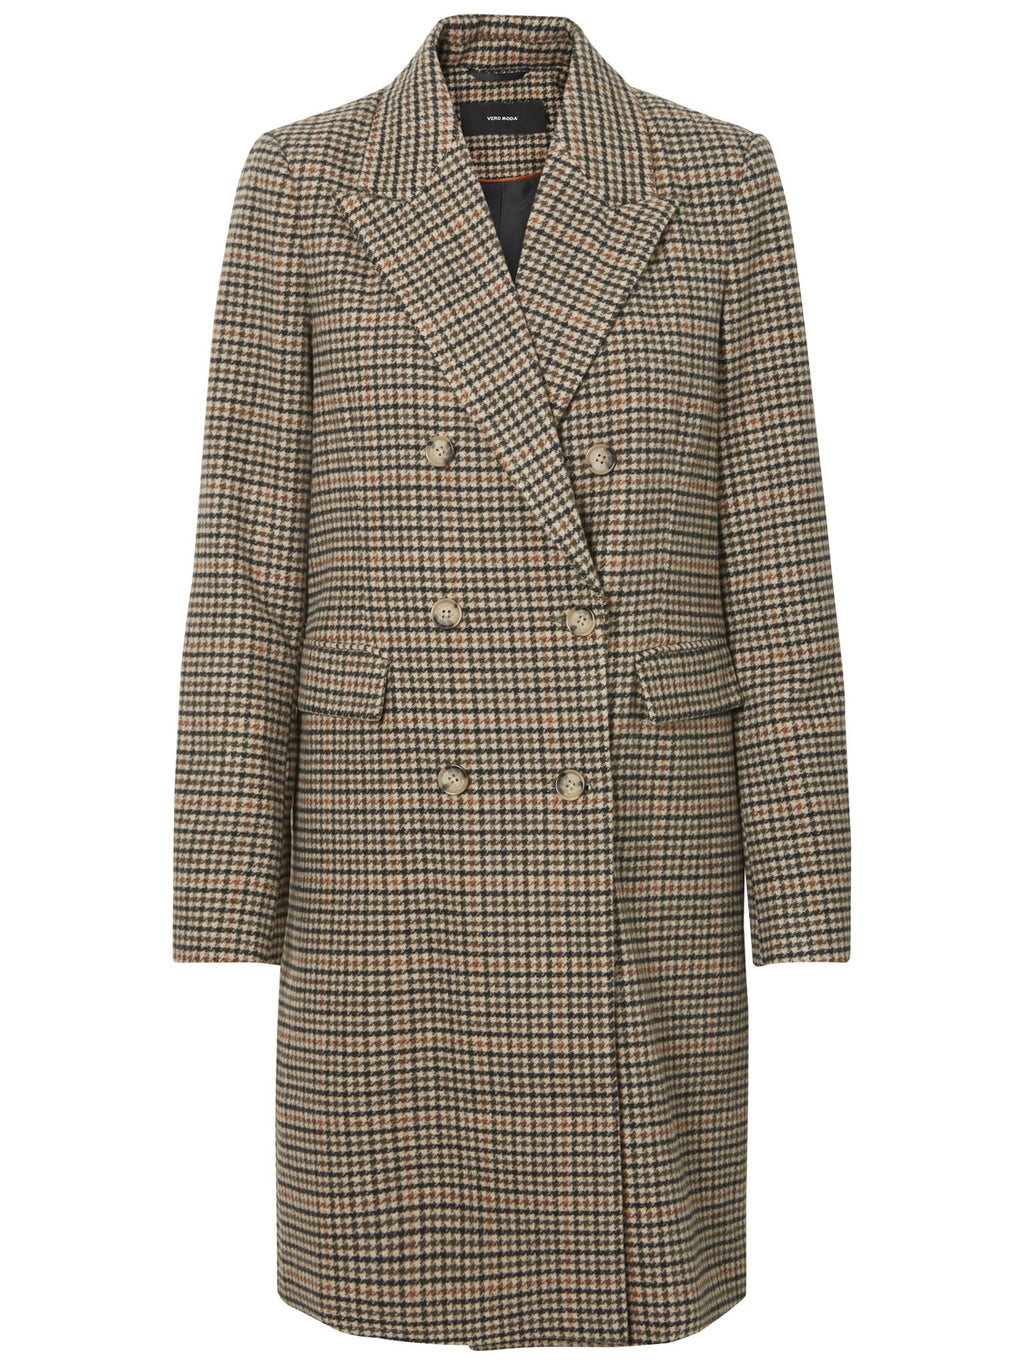 Shop Double Breasted Checked Houndstooth Long Wool Coats at Coveted Style